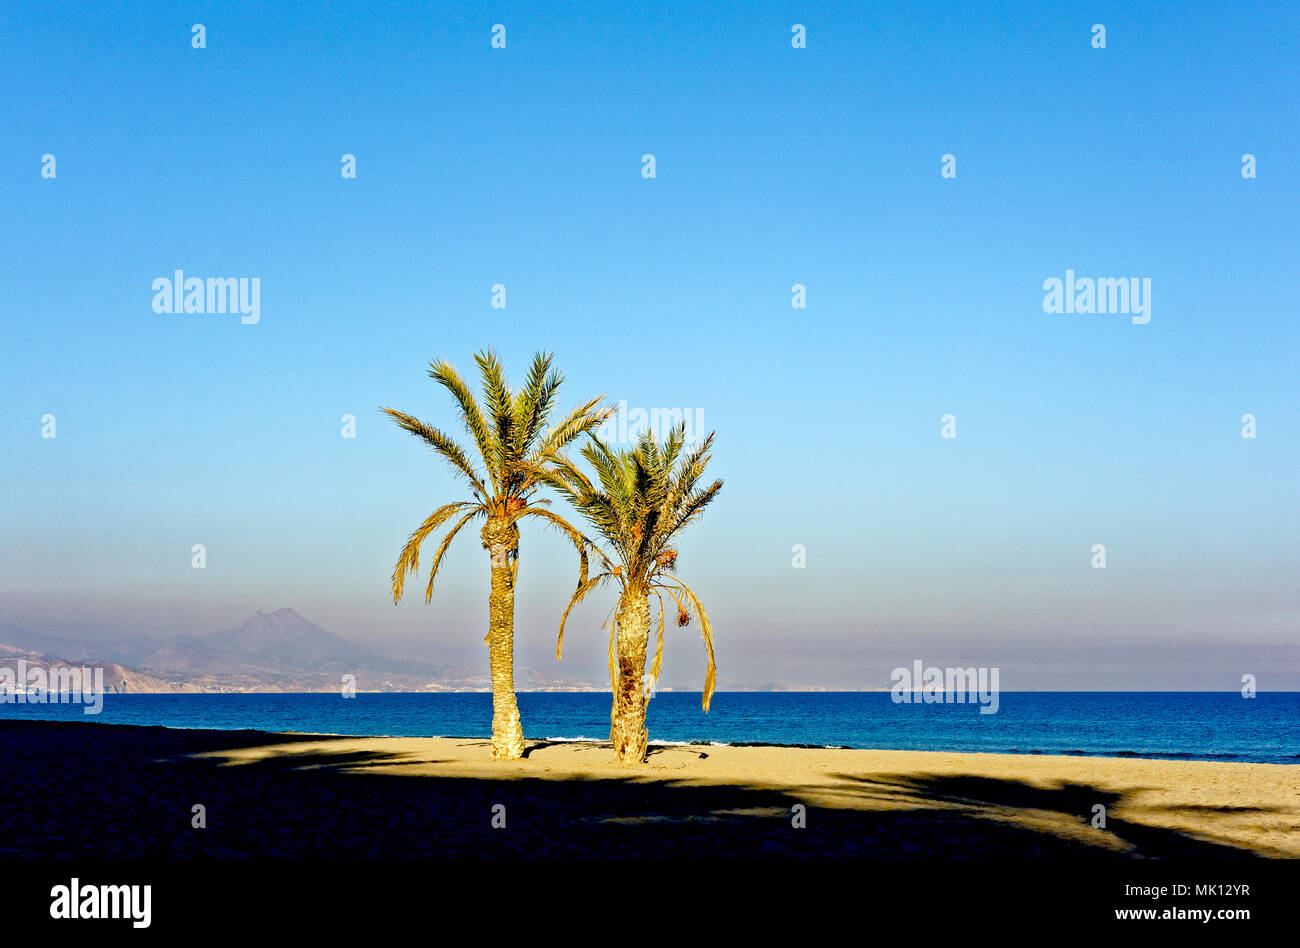 palm trees on the beach - Stock Image